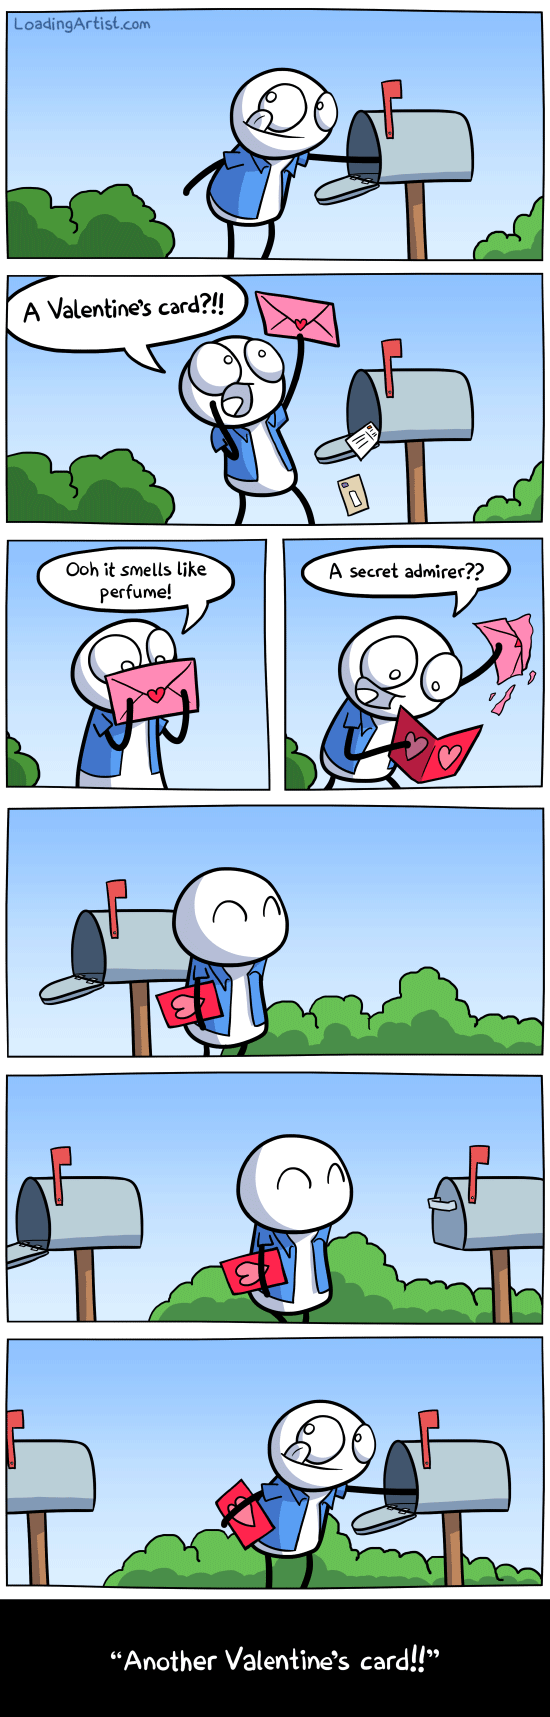 Another Valentines Card,Forever Alone,Alone,Sad,Another Valentine Card,A Secert Admirer,Funny,Valentine Comic,